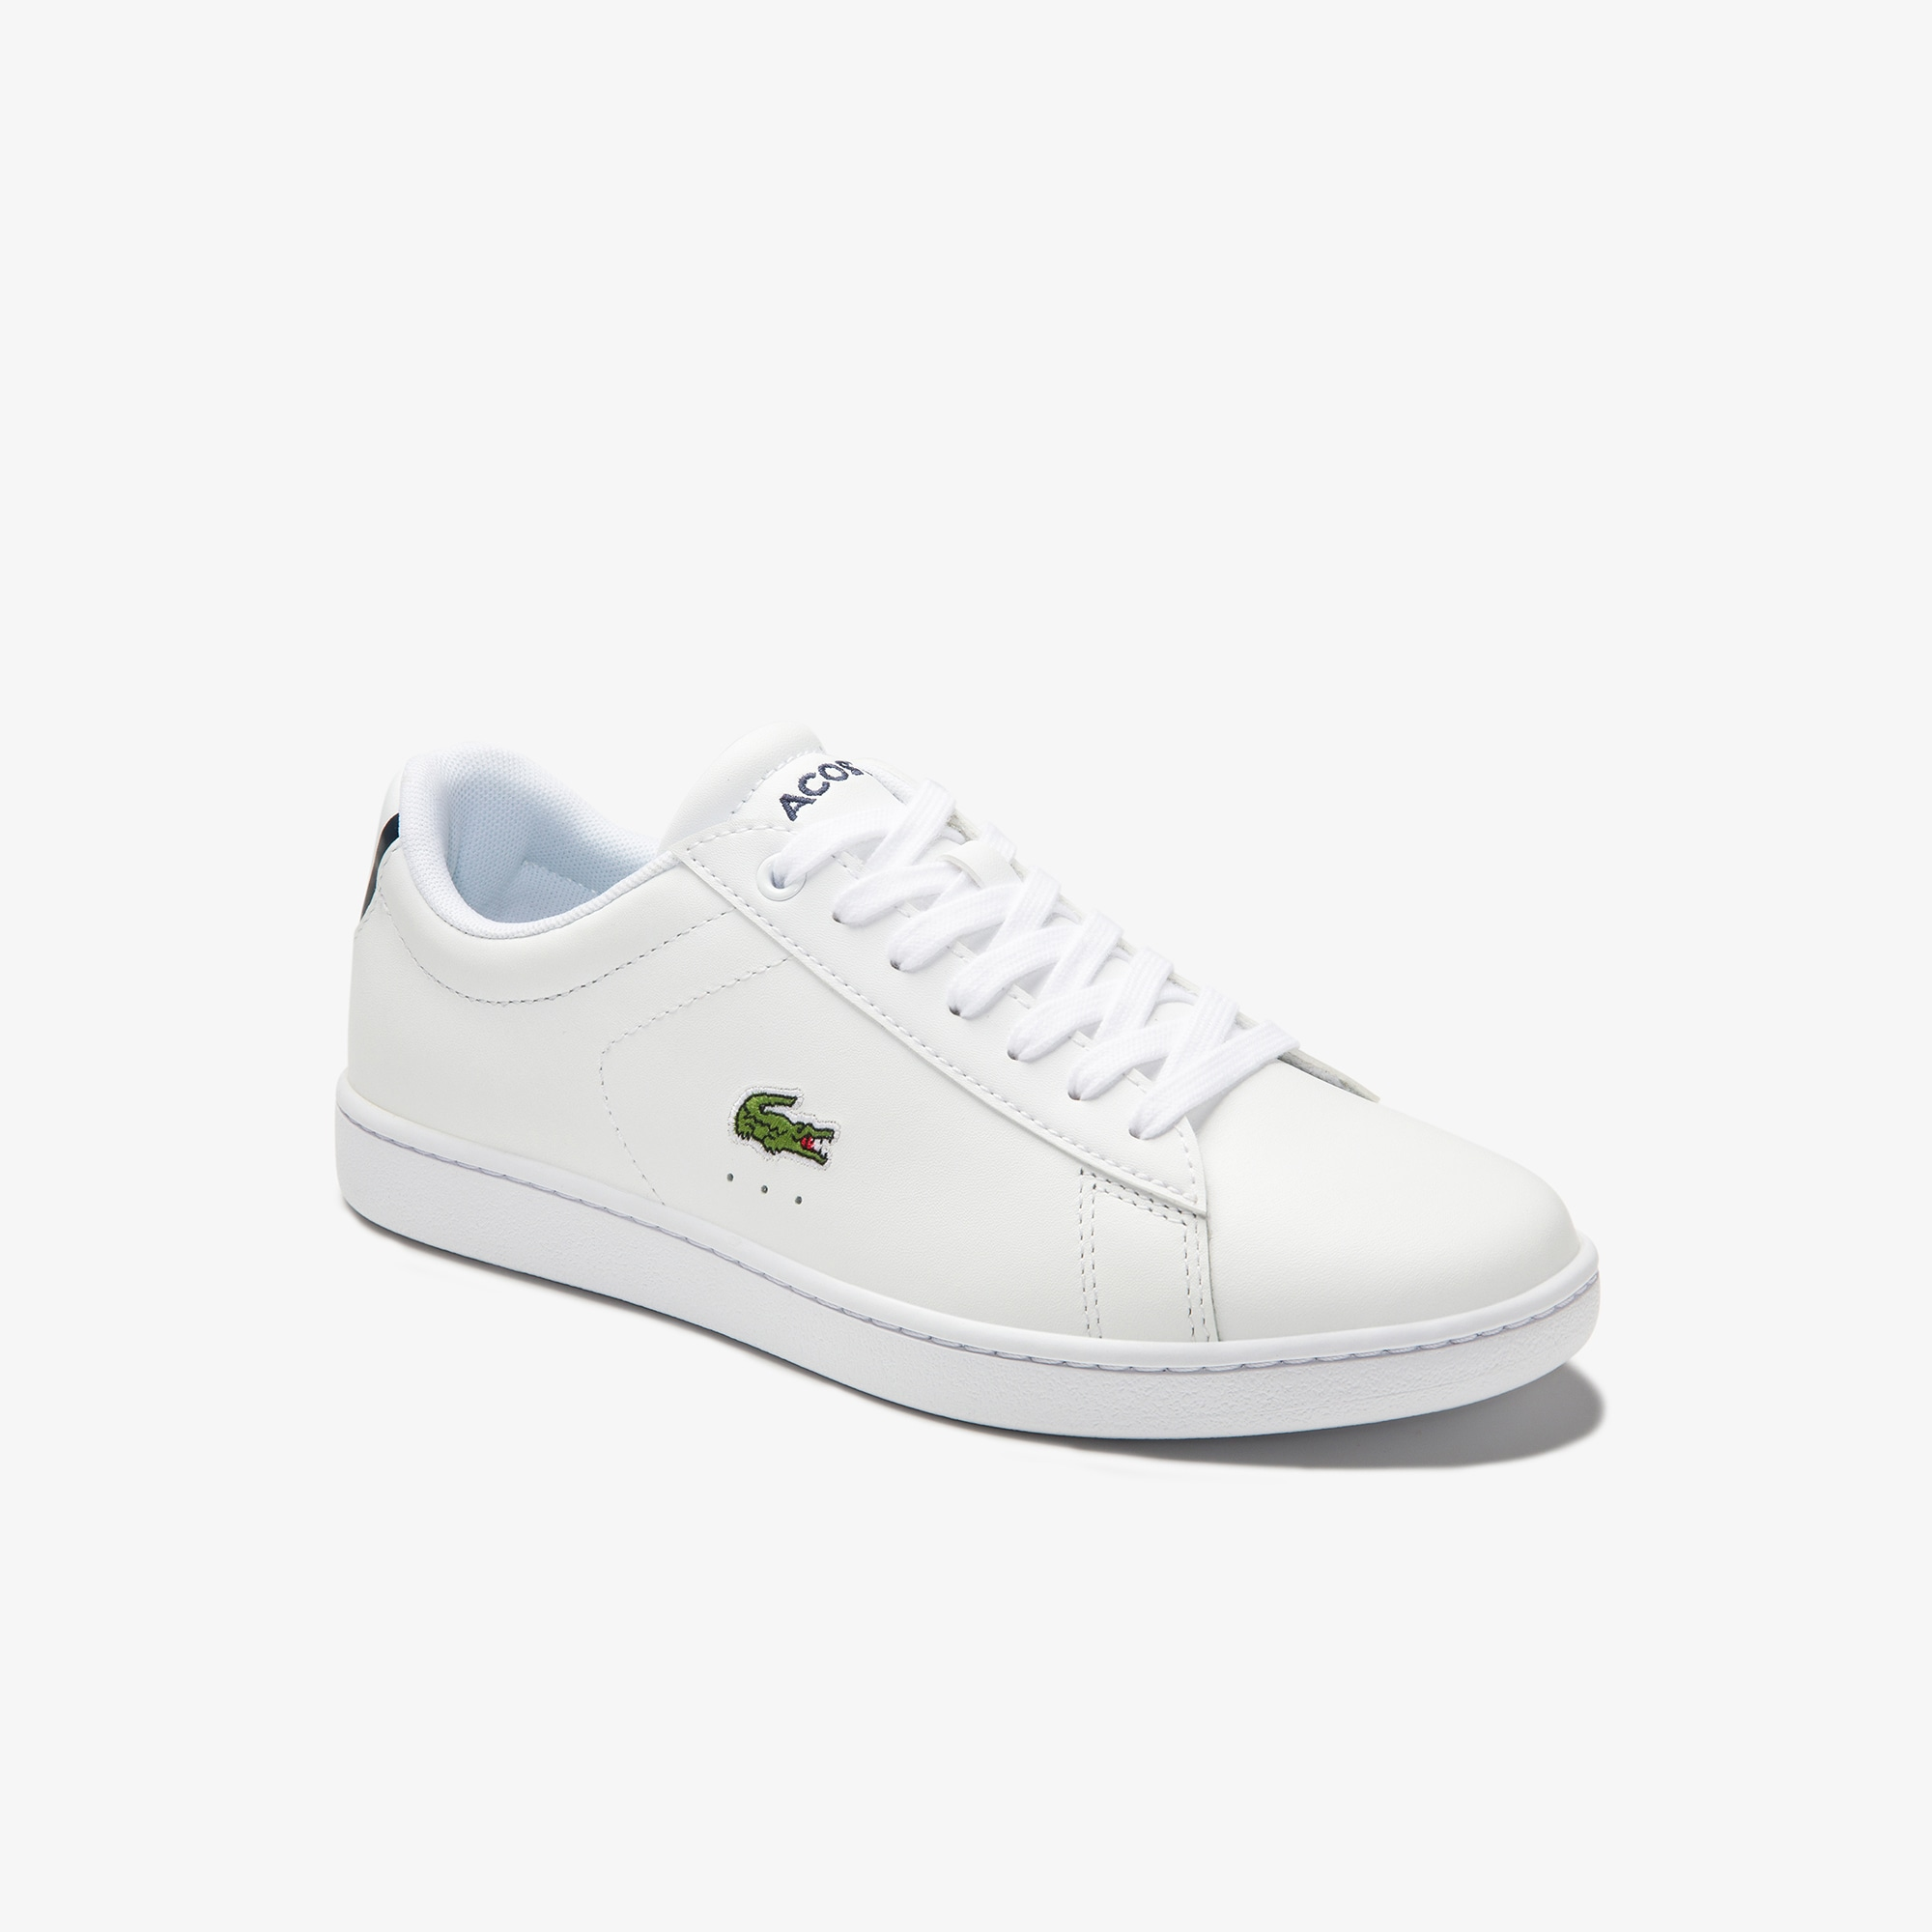 Lacoste WOMEN'S CARNABY EVO MESH-LINED LEATHER SNEAKERS